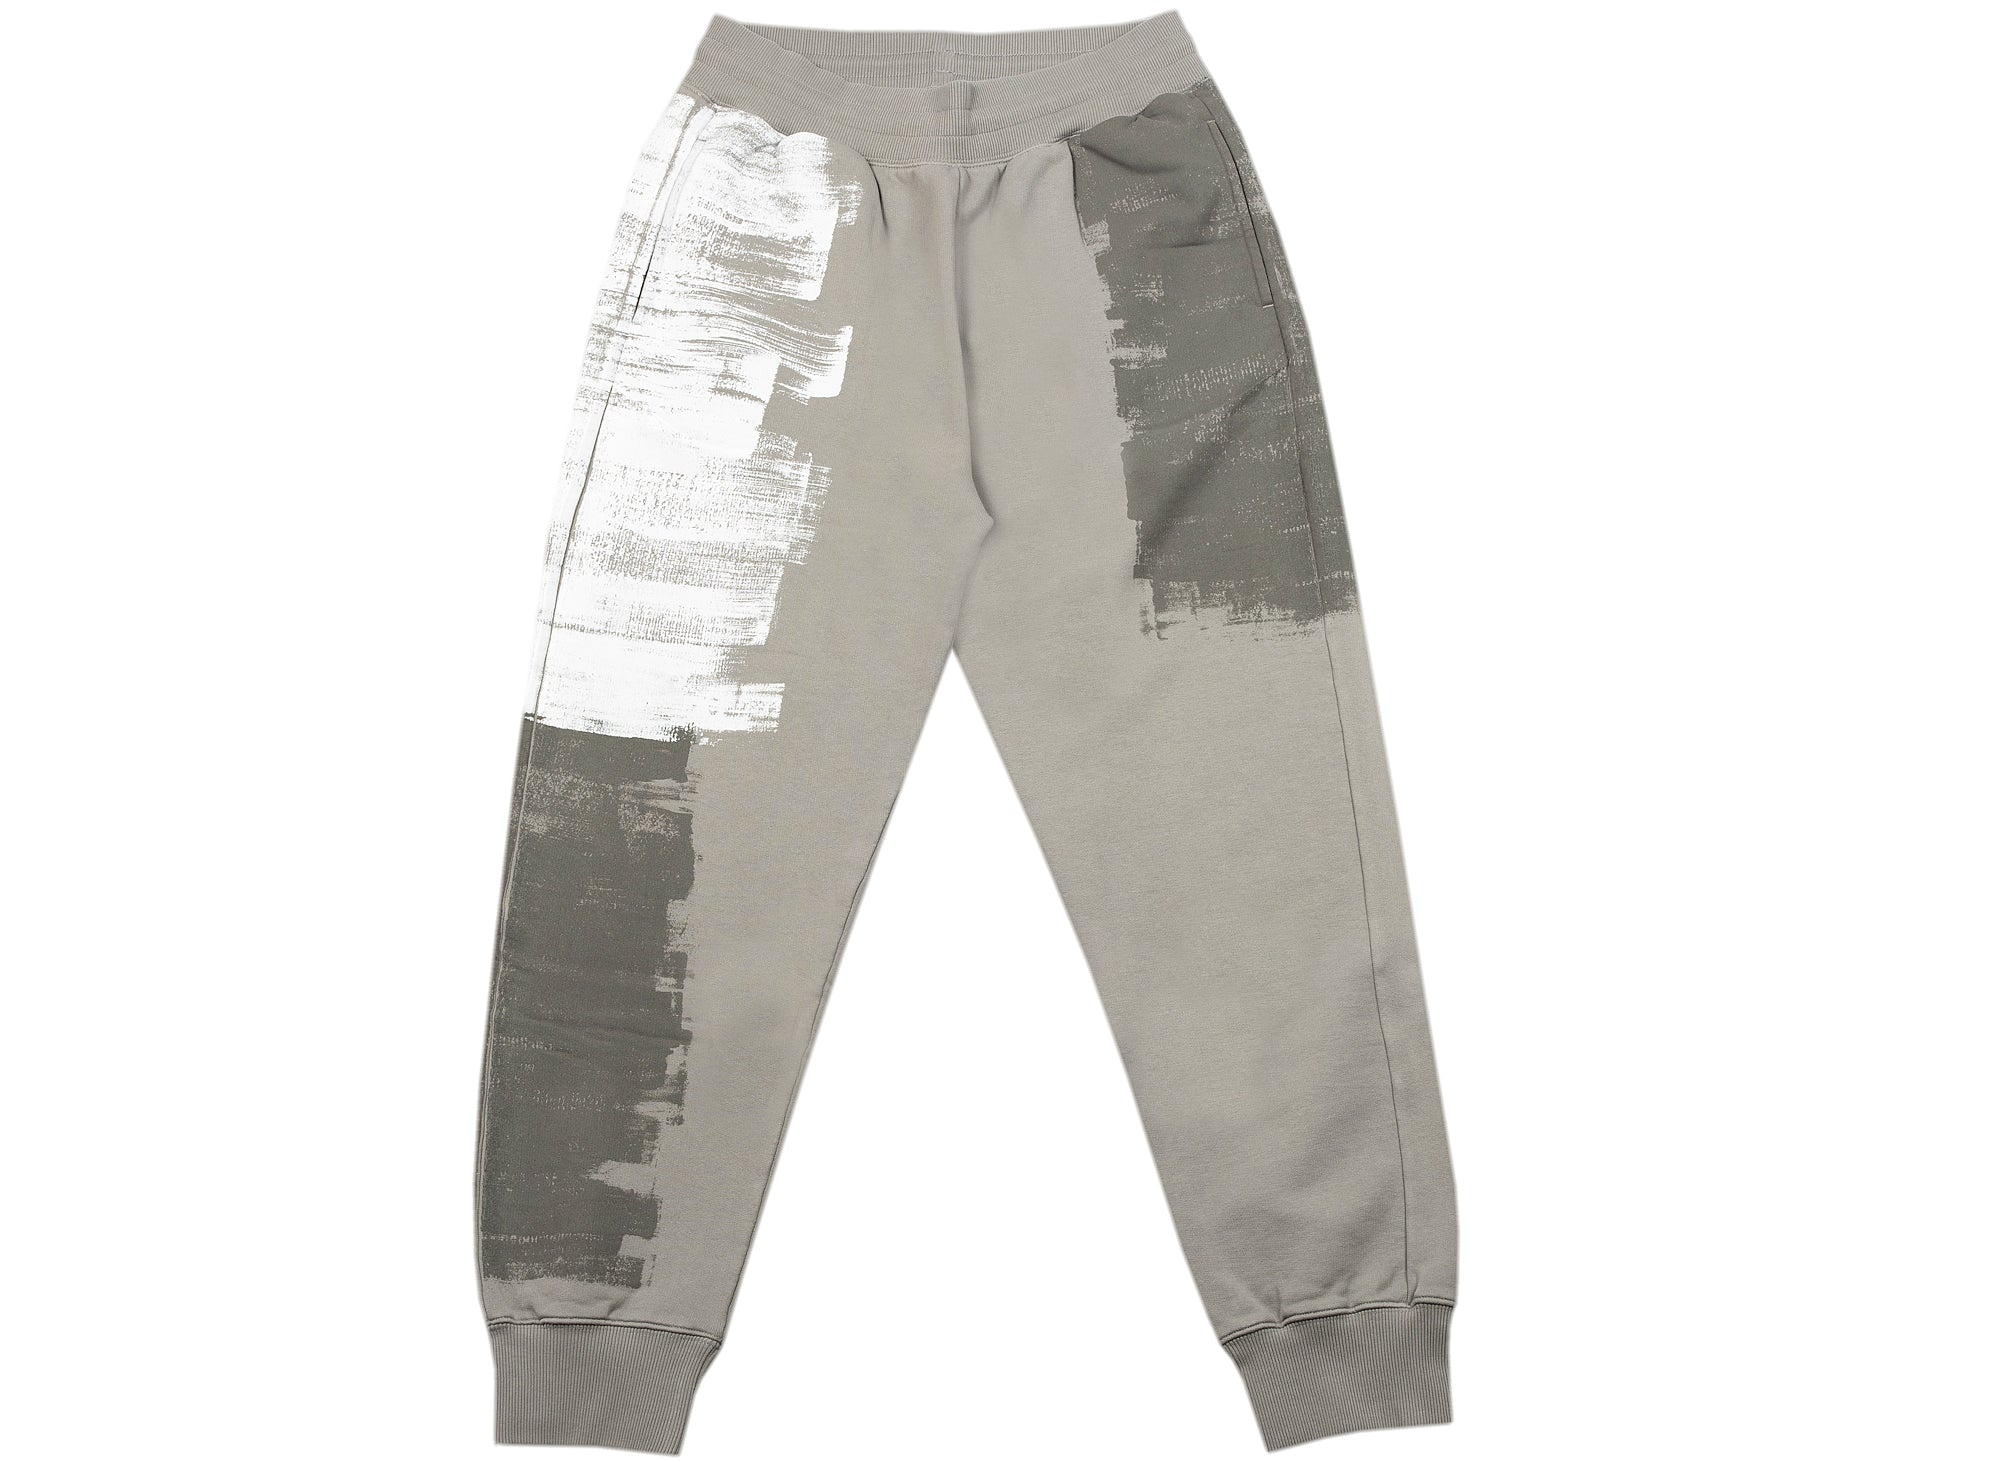 A-COLD-WALL* Brush Stroke Sweatpants in Grey xld